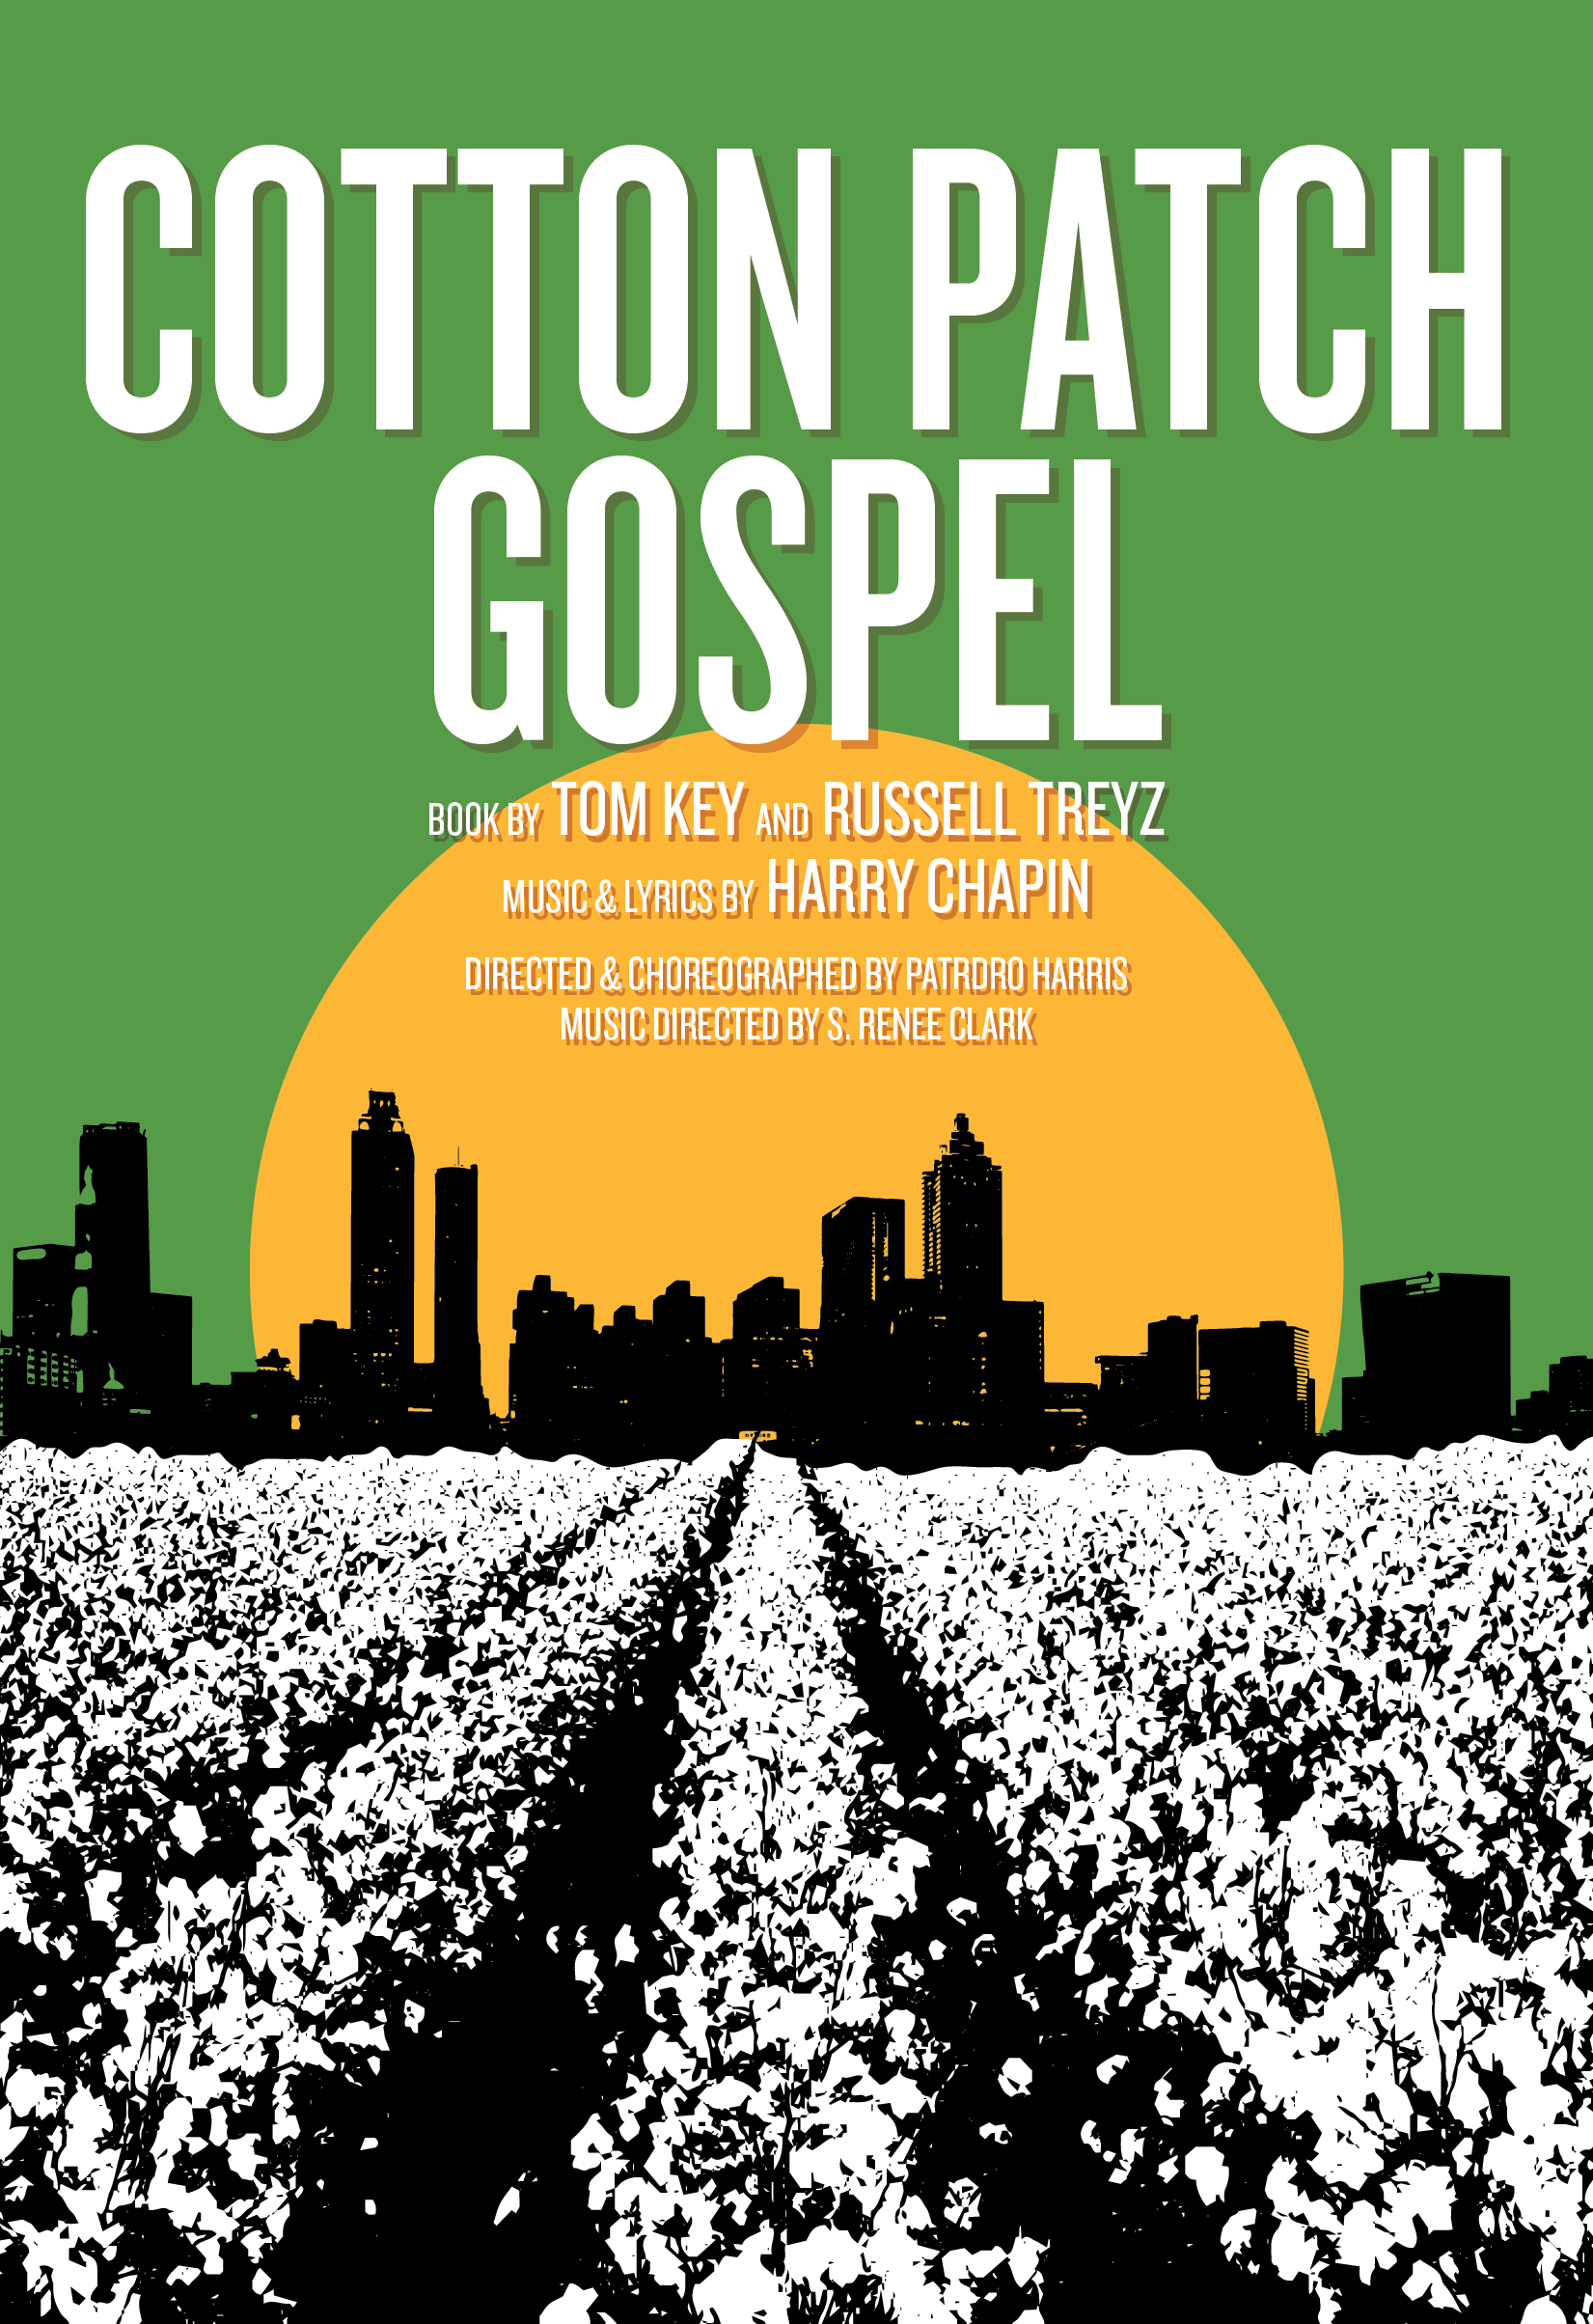 art-text_cottonpatchgospel